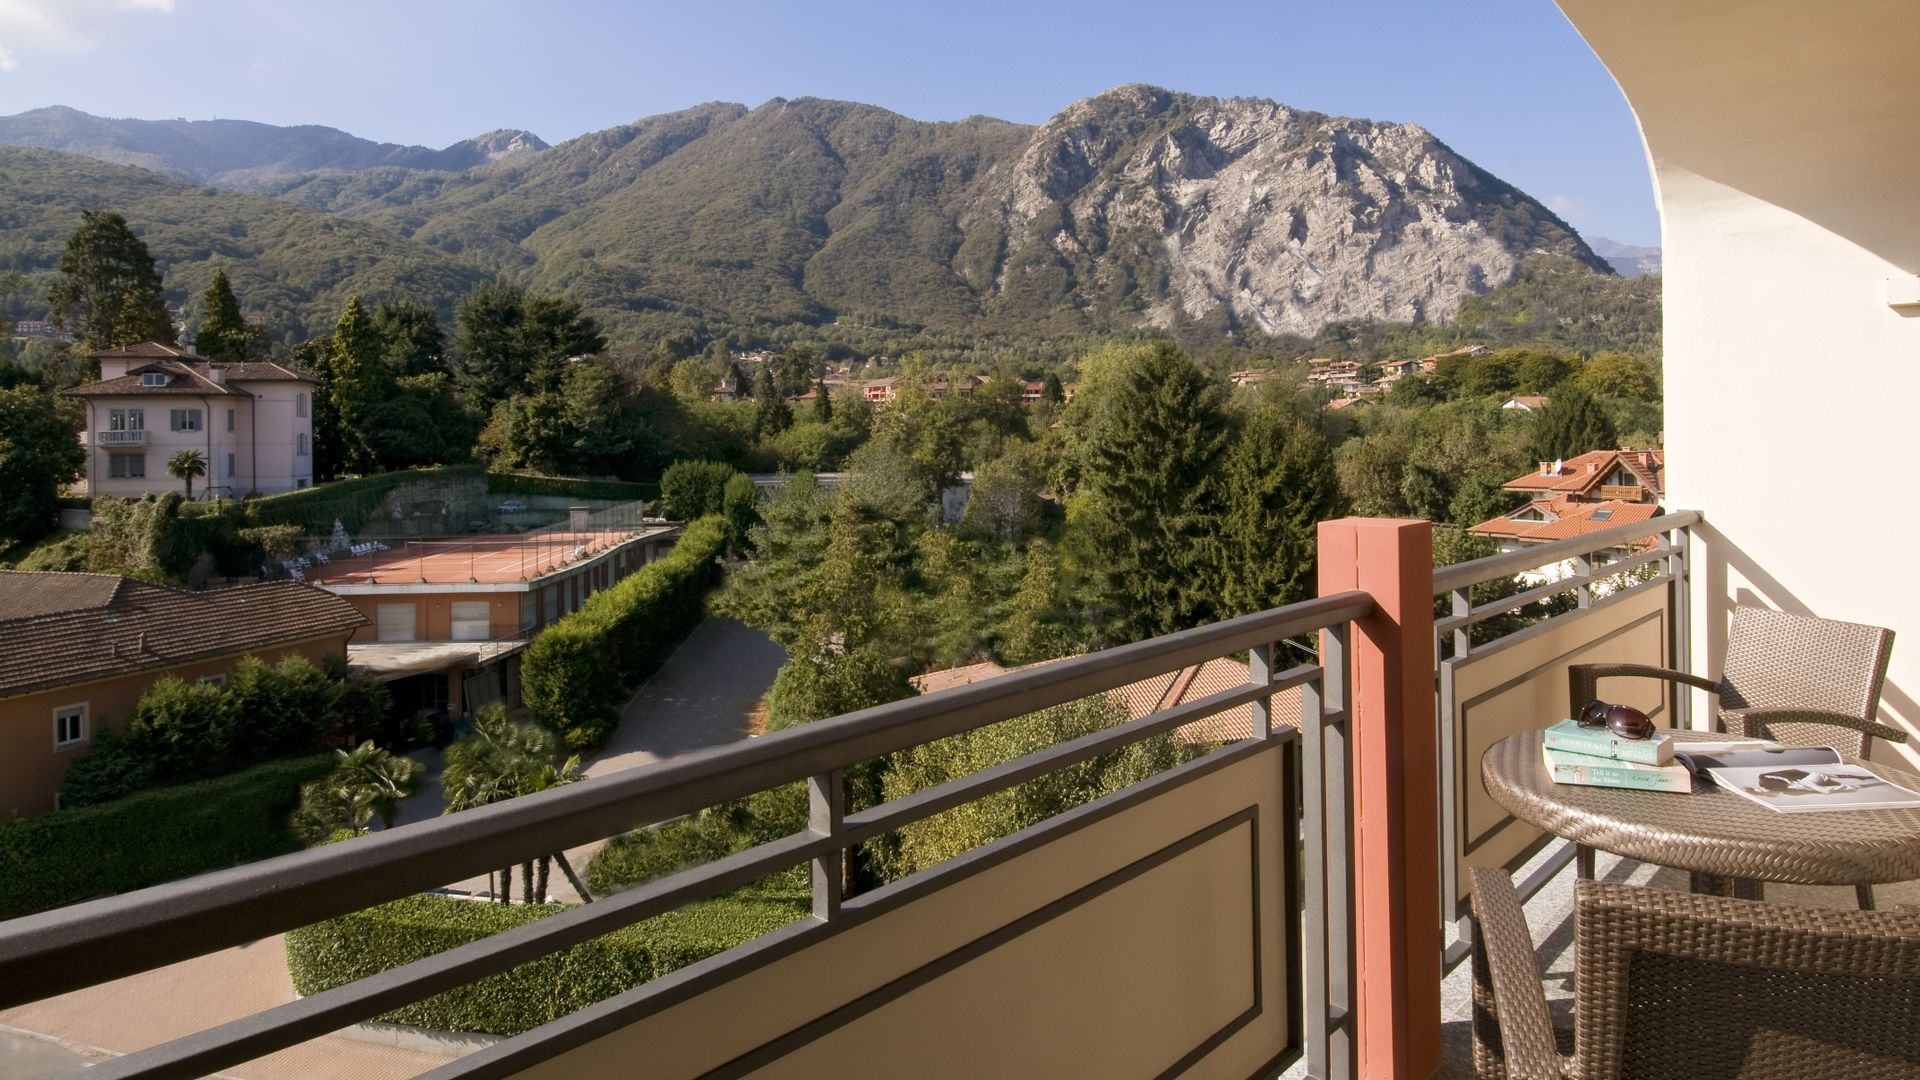 Splendid_Junior_suite_vista_monte_balcone_2_HR.jpg